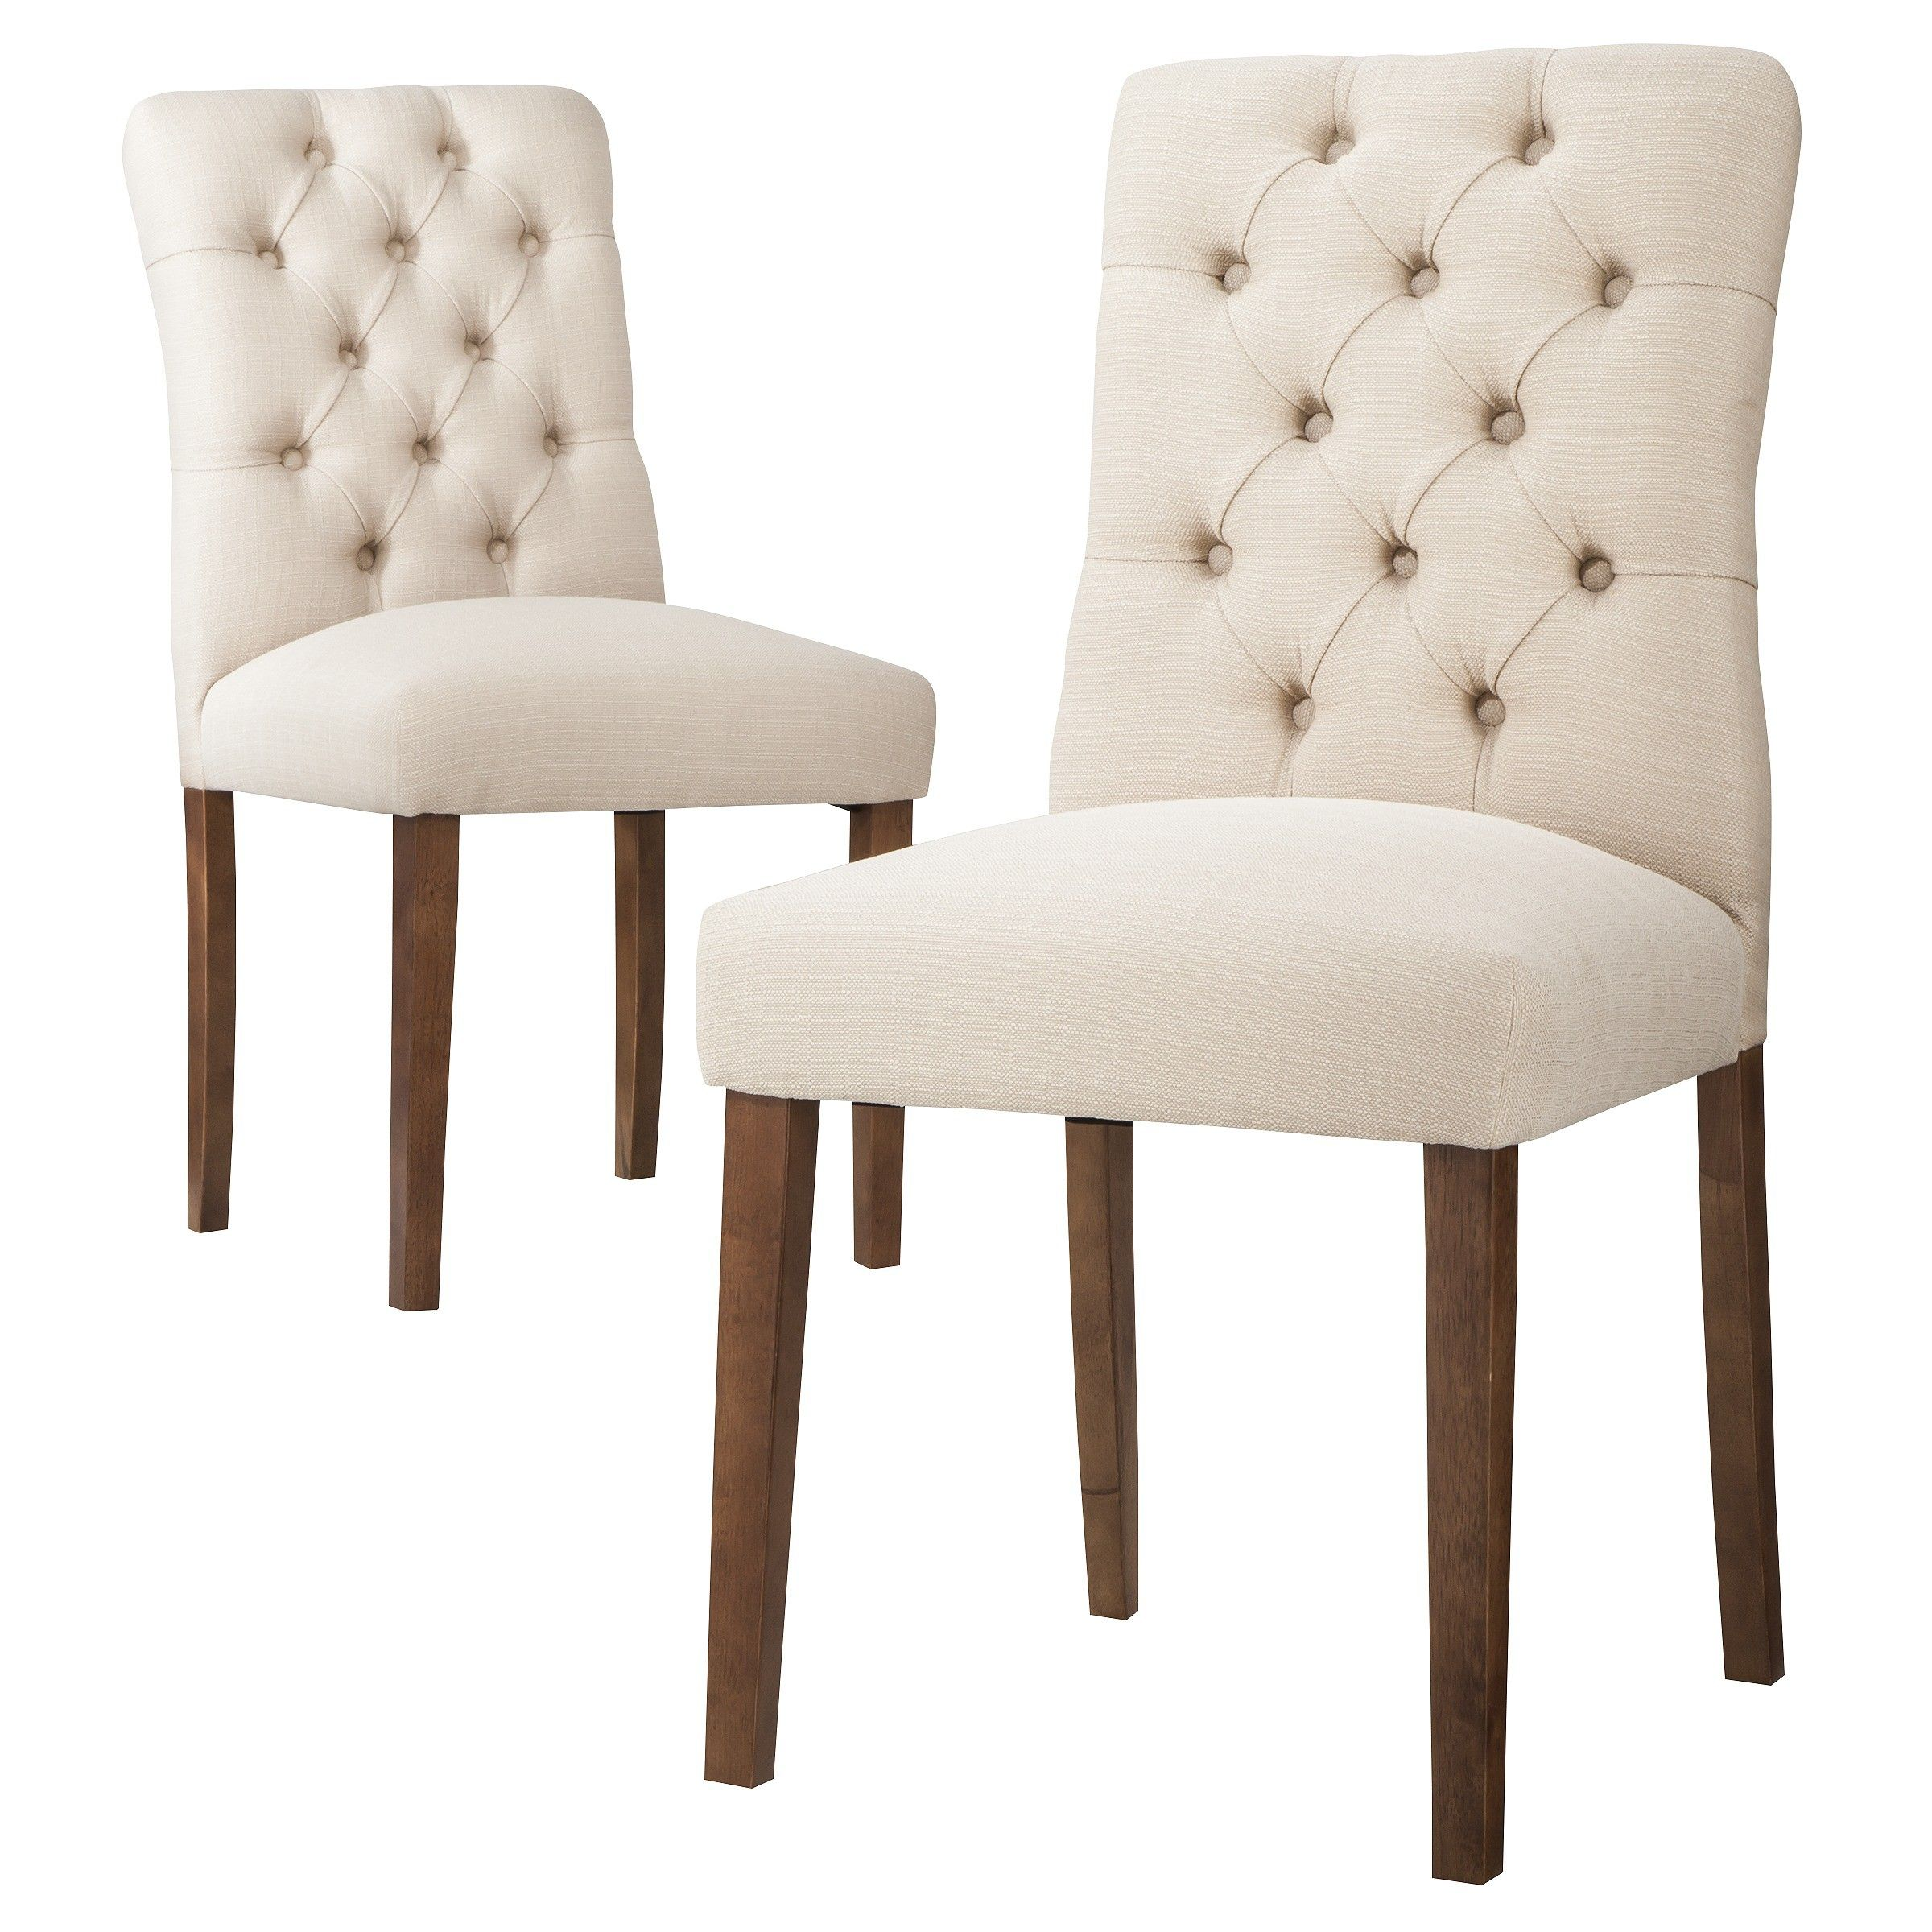 Dining Room Chairs Target 120 Threshold Brookline Tufted Dining Chair Set Of 2